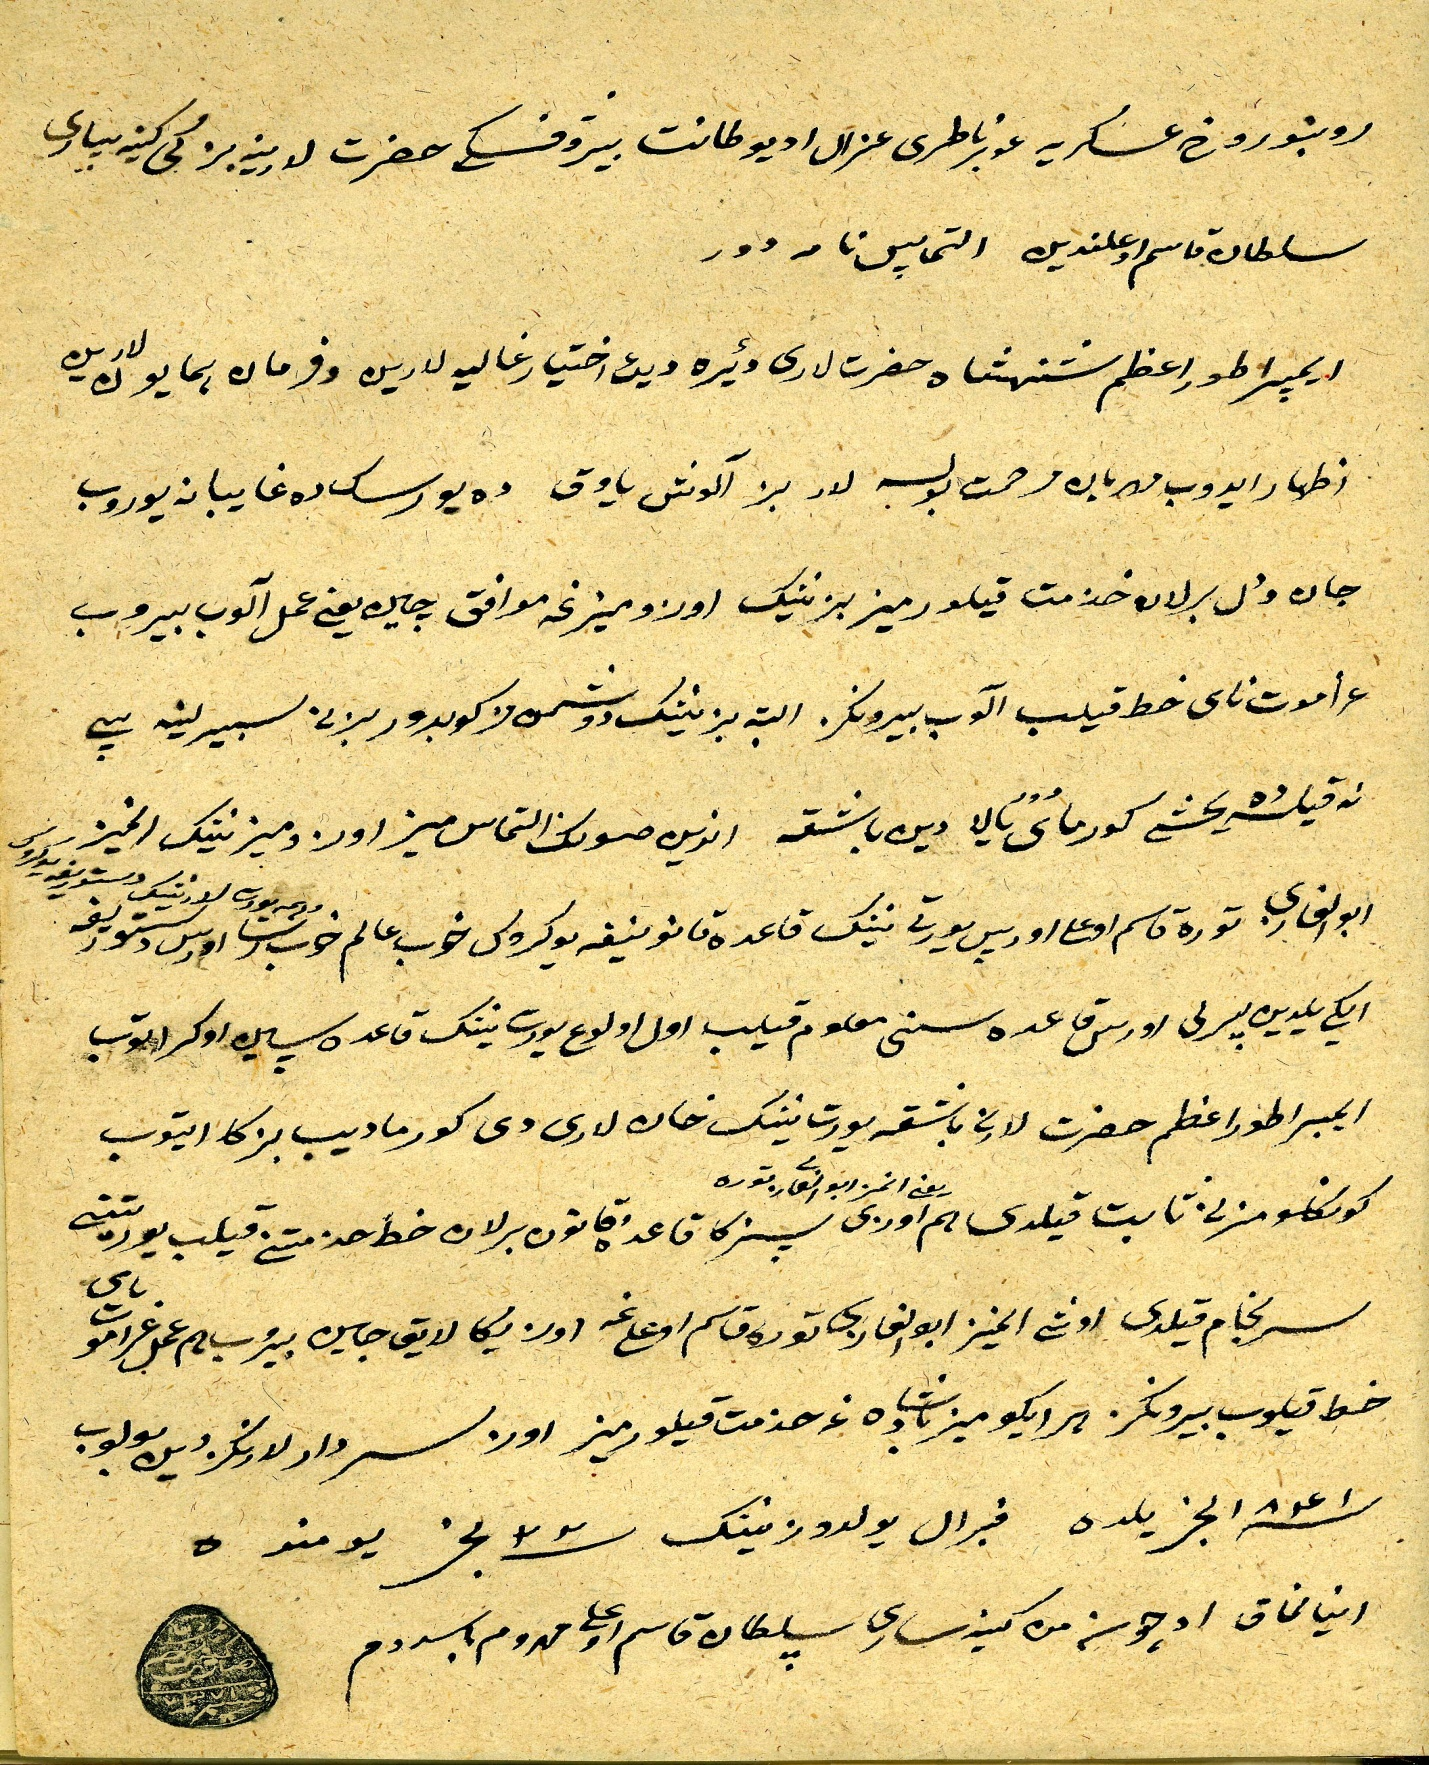 letter to a veteran file letter of kenesary sultan png wikimedia commons 23178 | Letter of Kenesary sultan